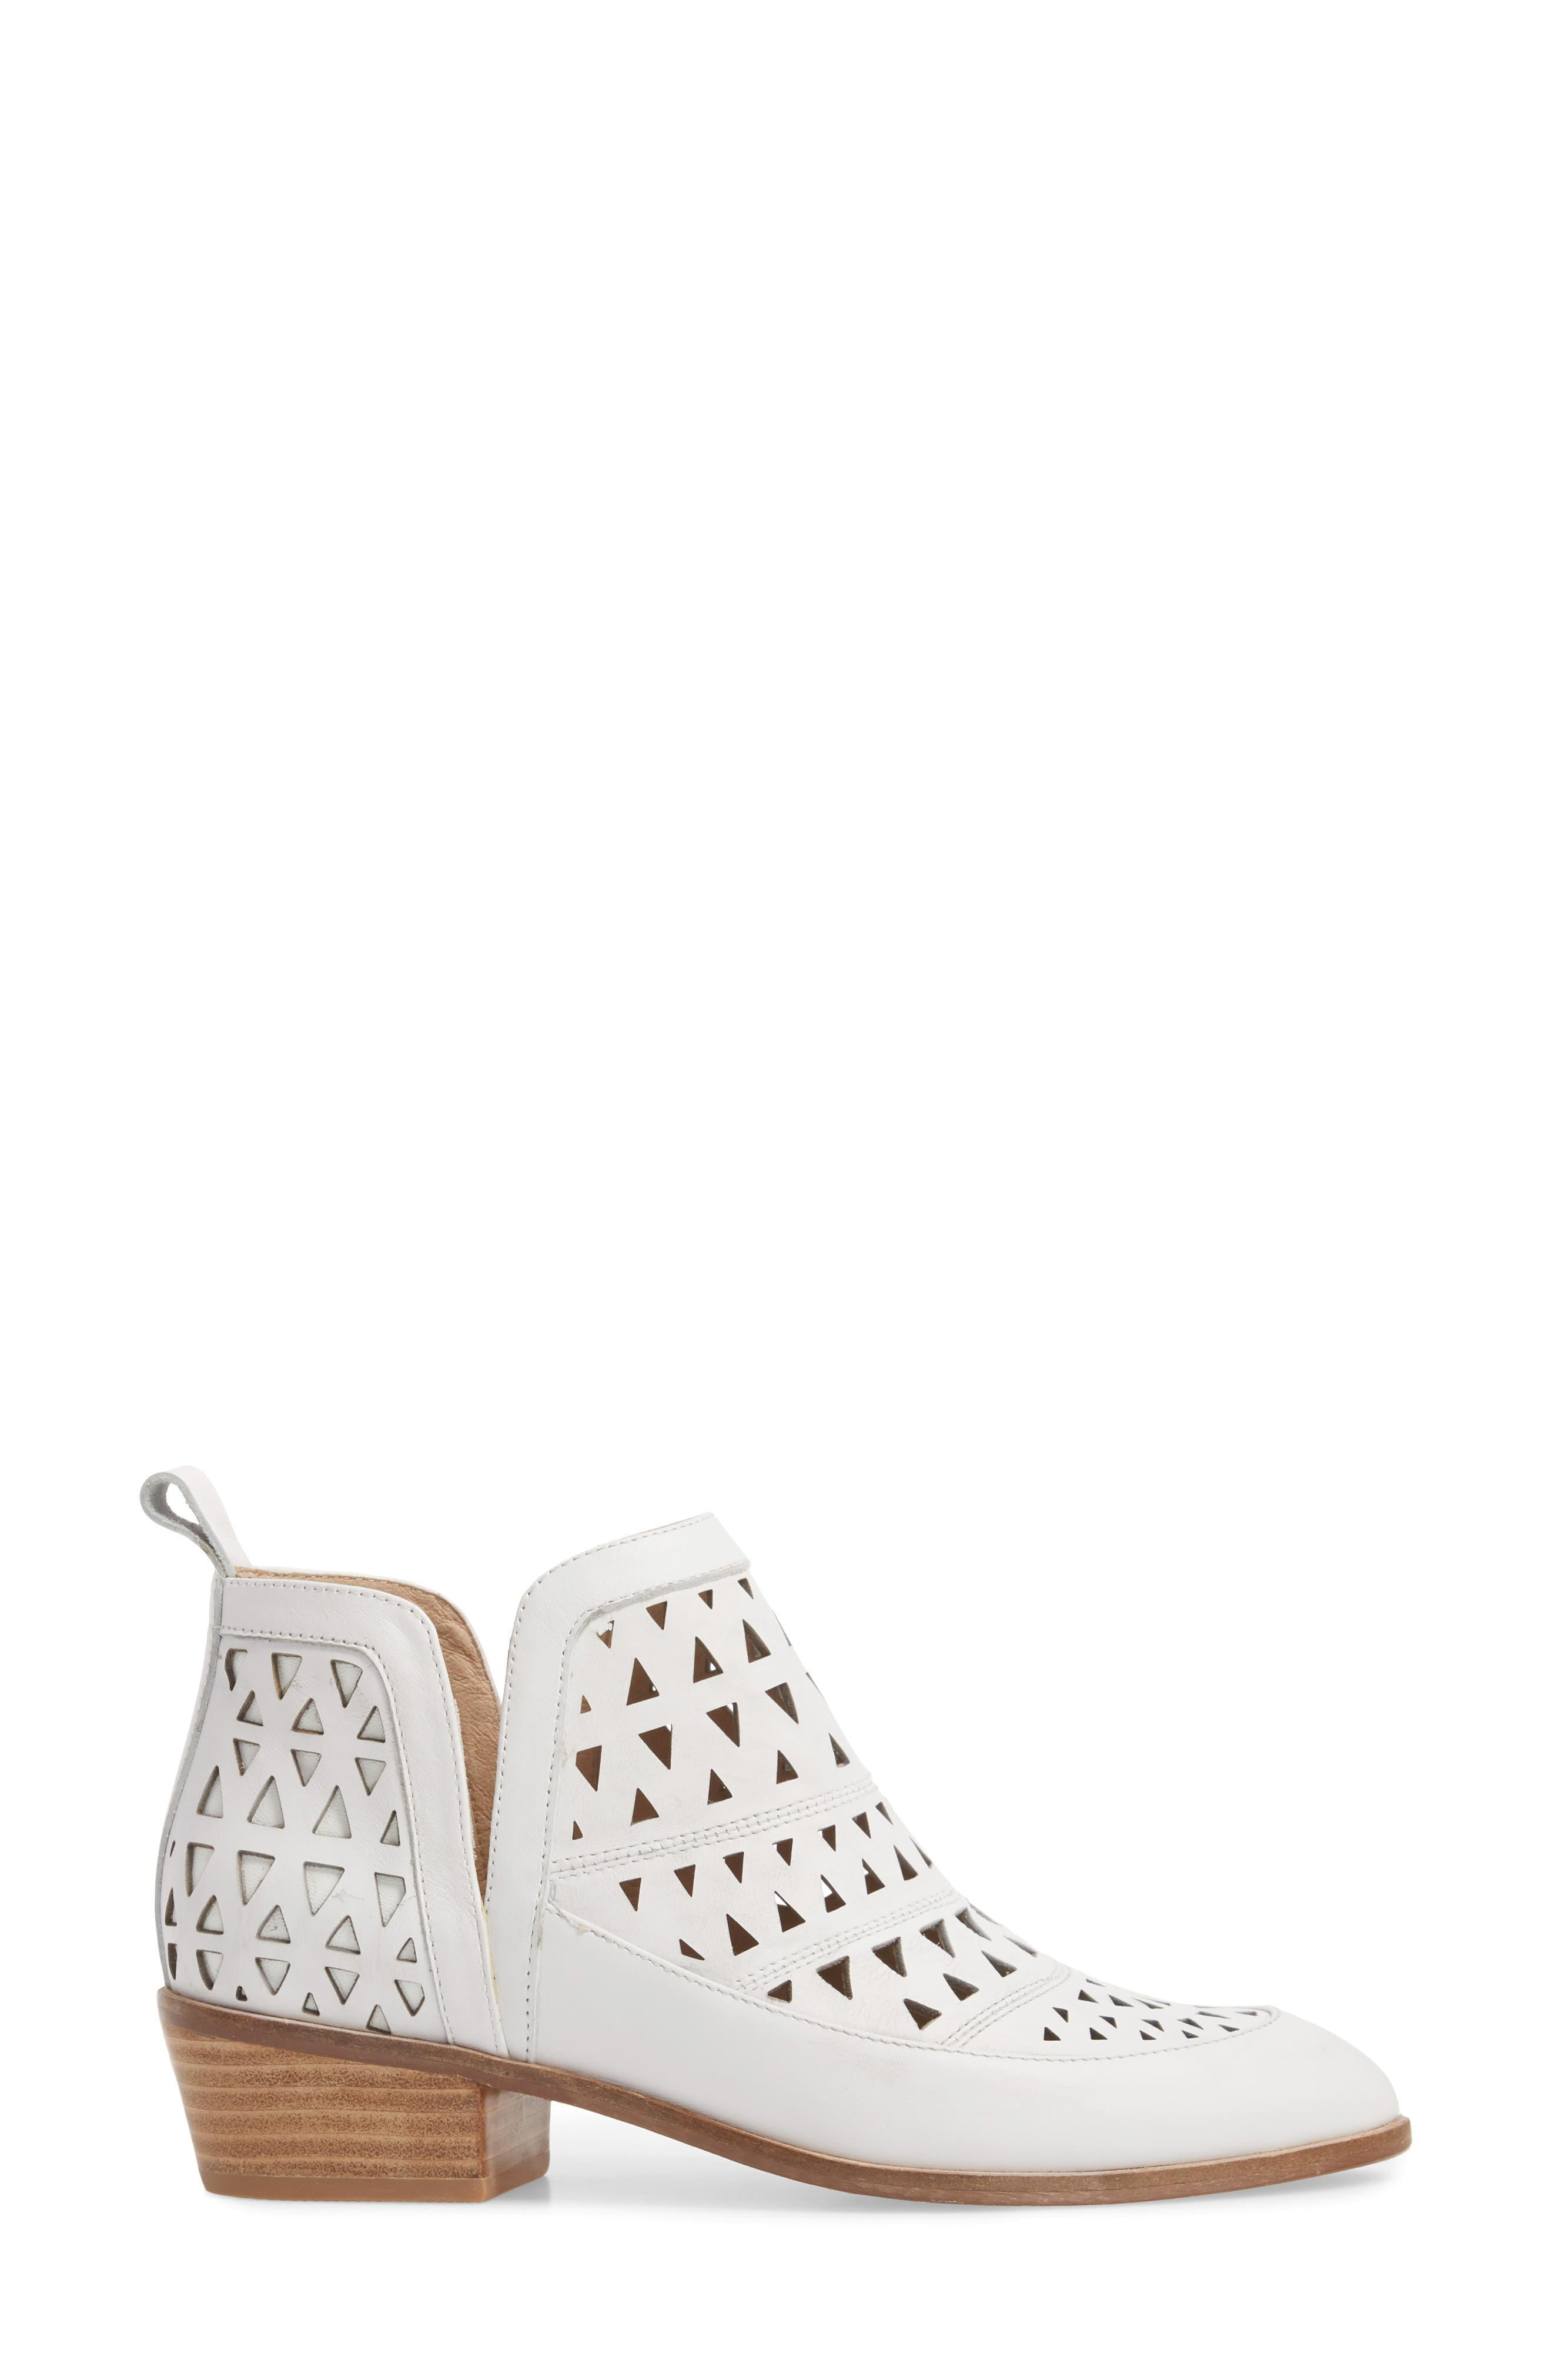 Catherine Cutout Bootie,                             Alternate thumbnail 3, color,                             WHITE LEATHER